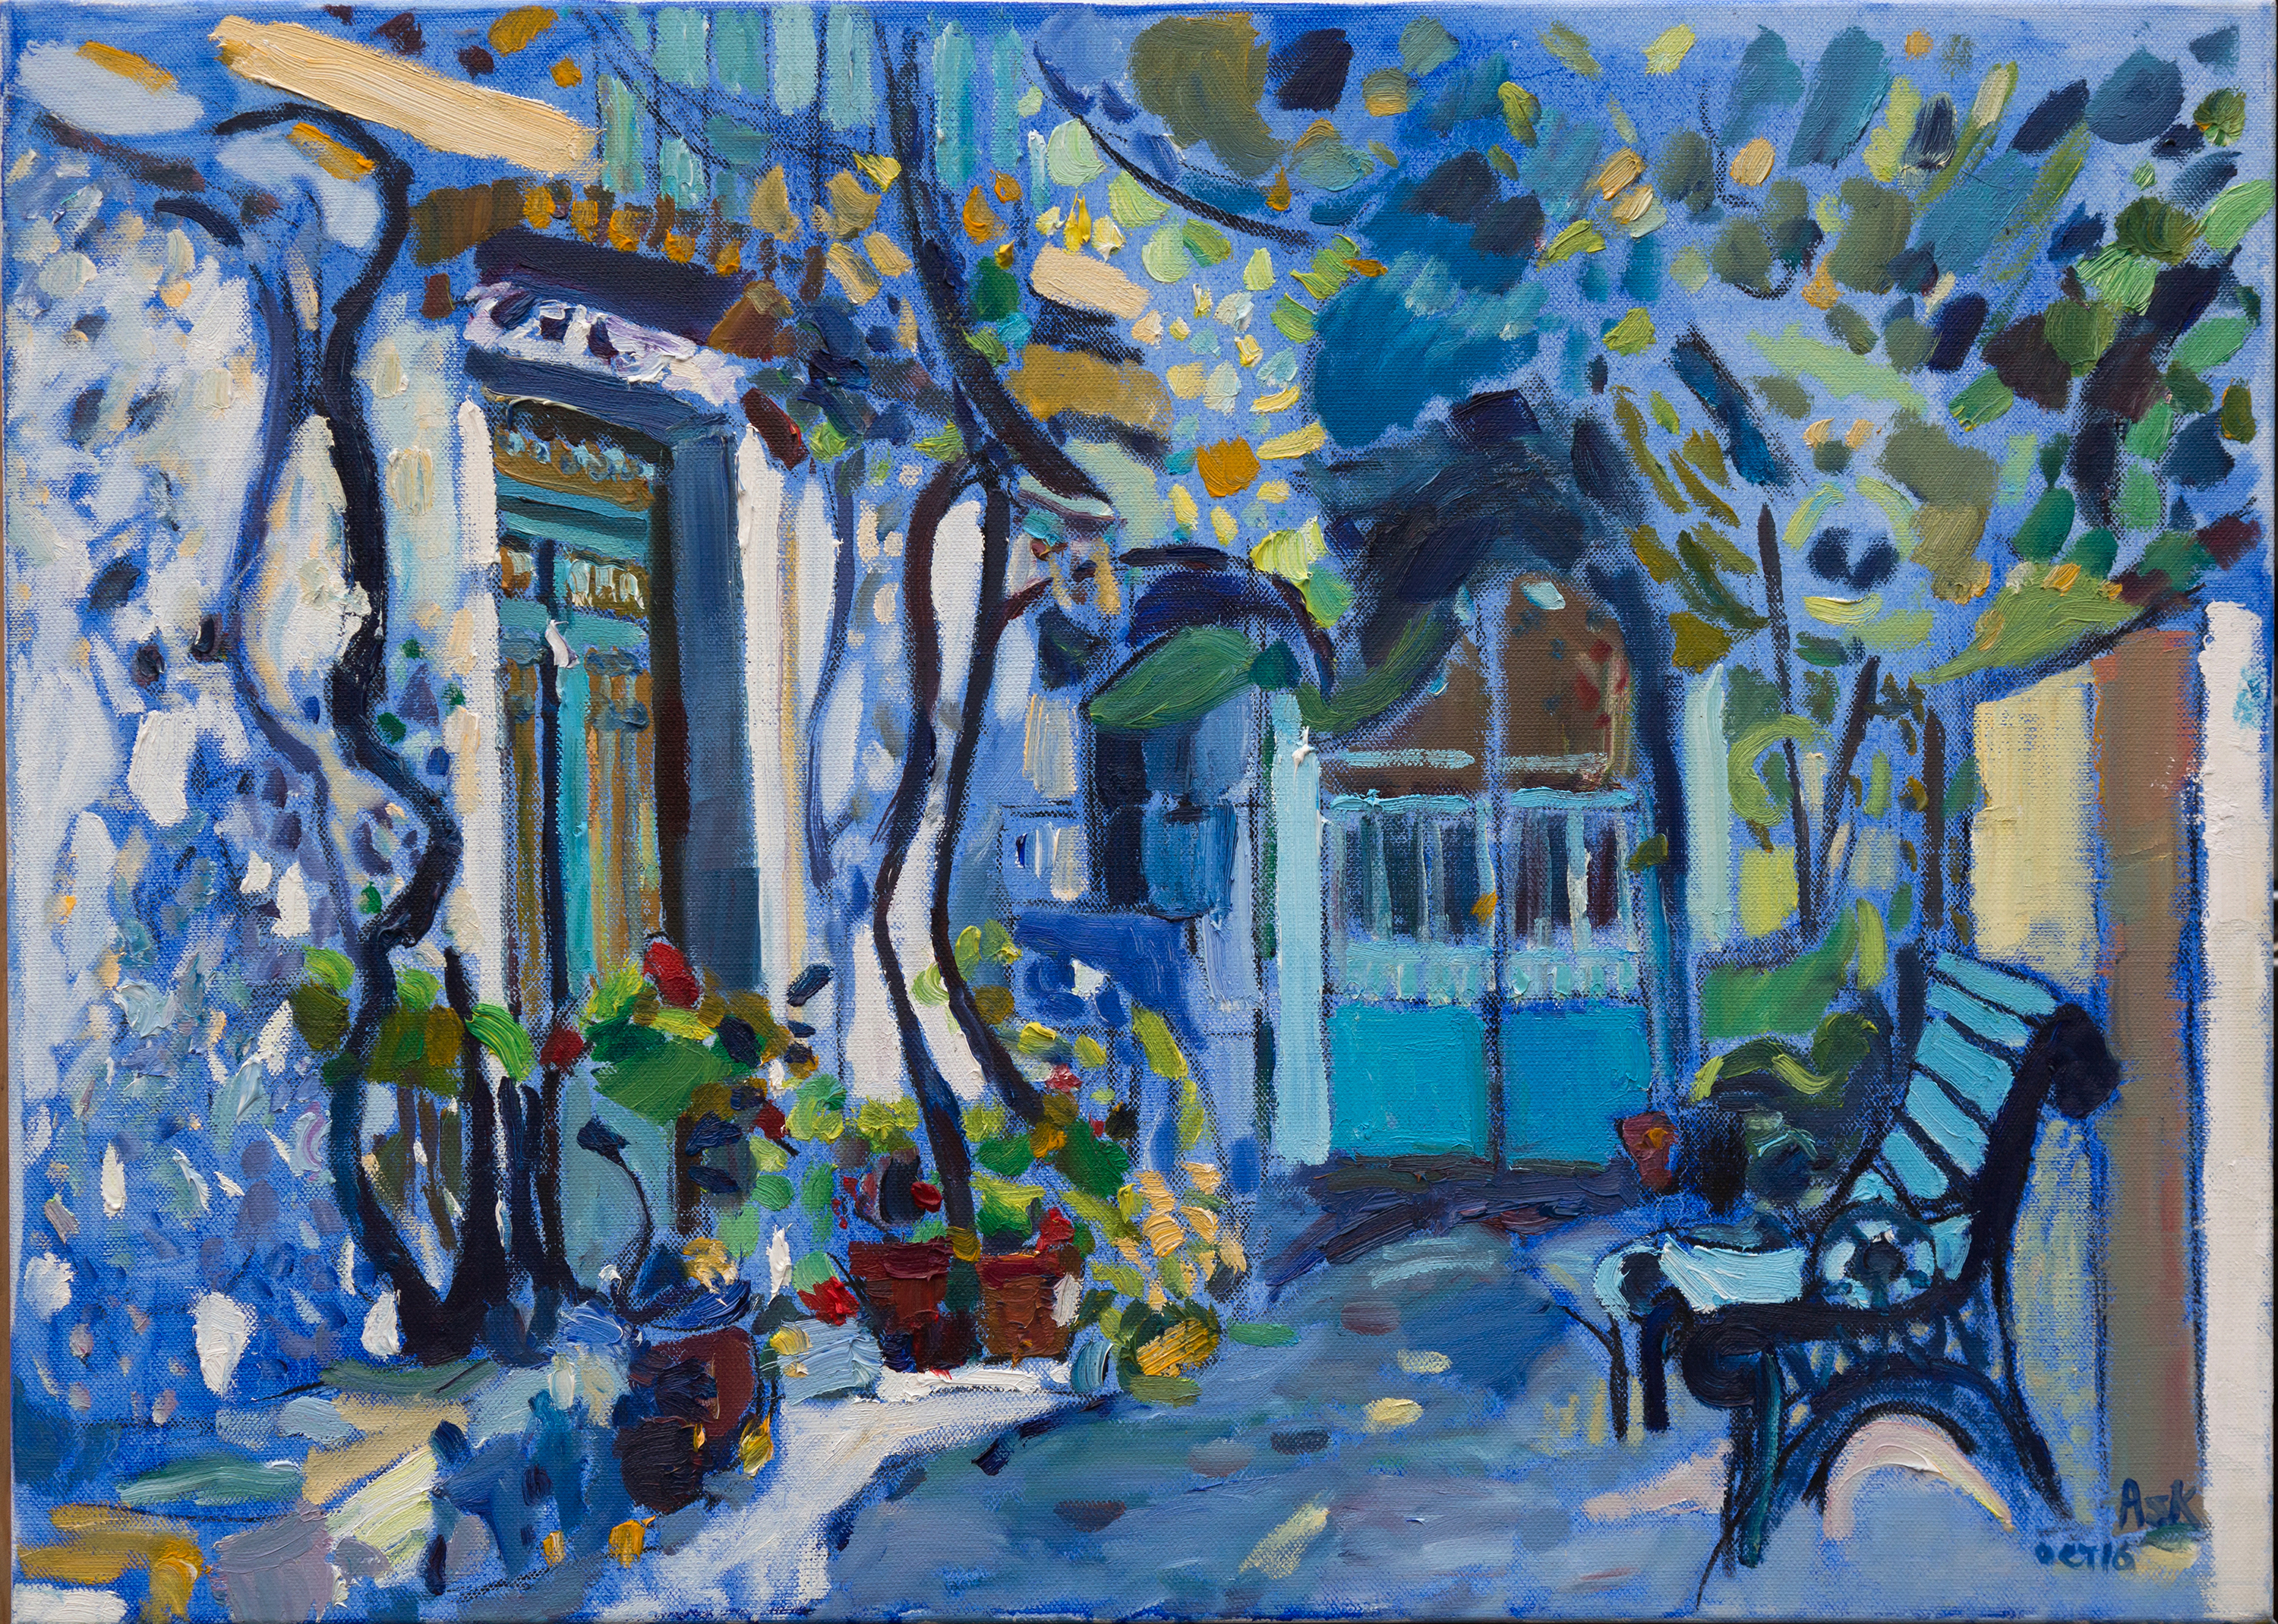 Oil painting in Crete by Elaine Ask artist